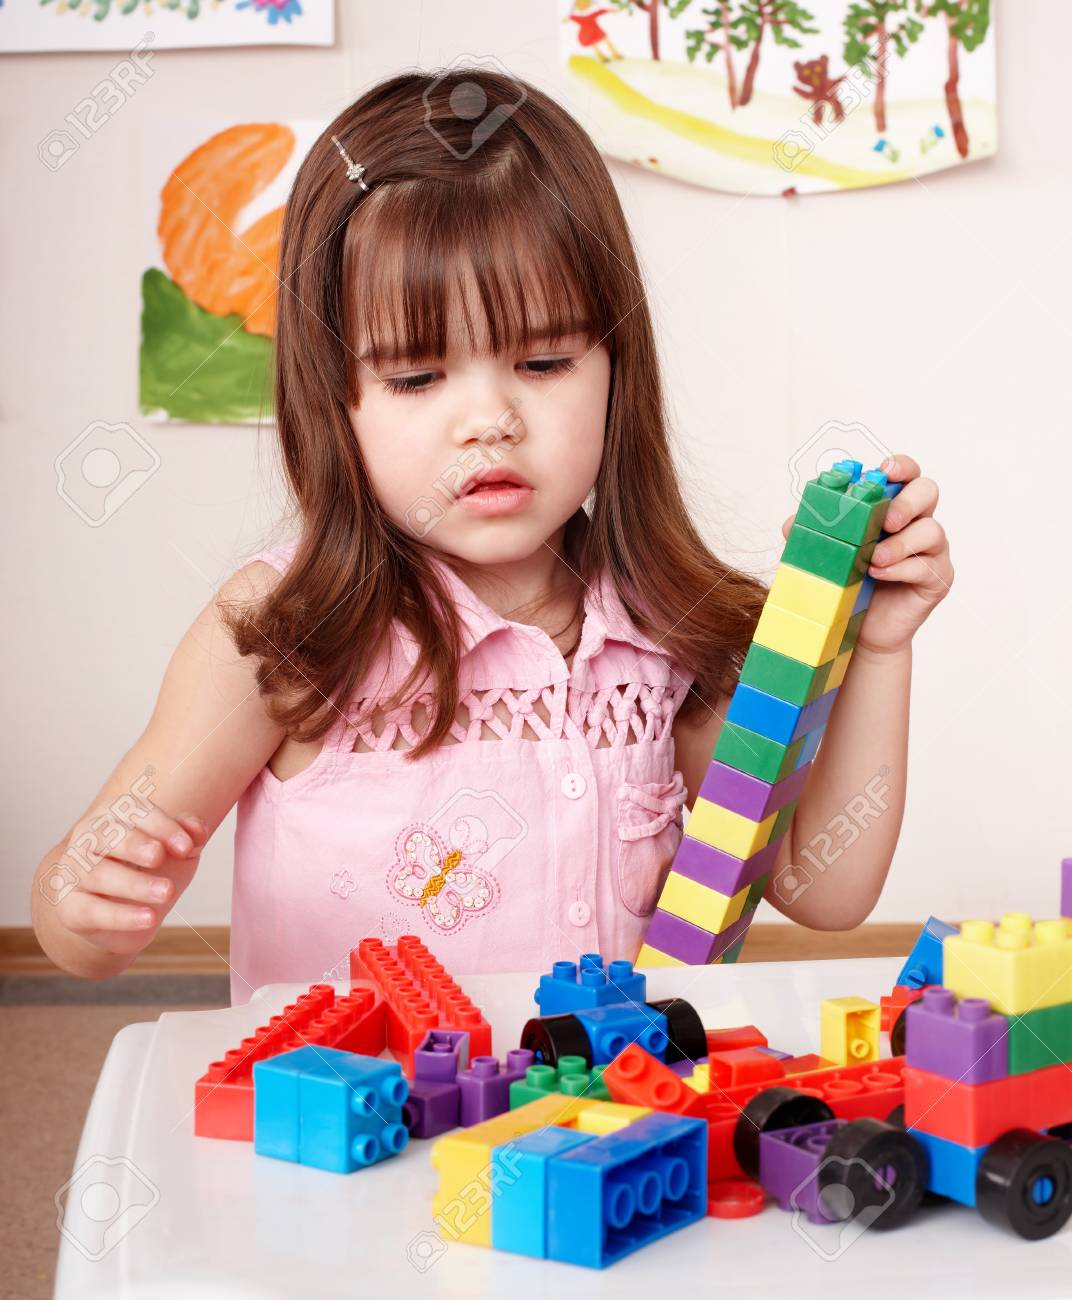 Child preschooler with construction set in play room. Stock Photo - 8781433